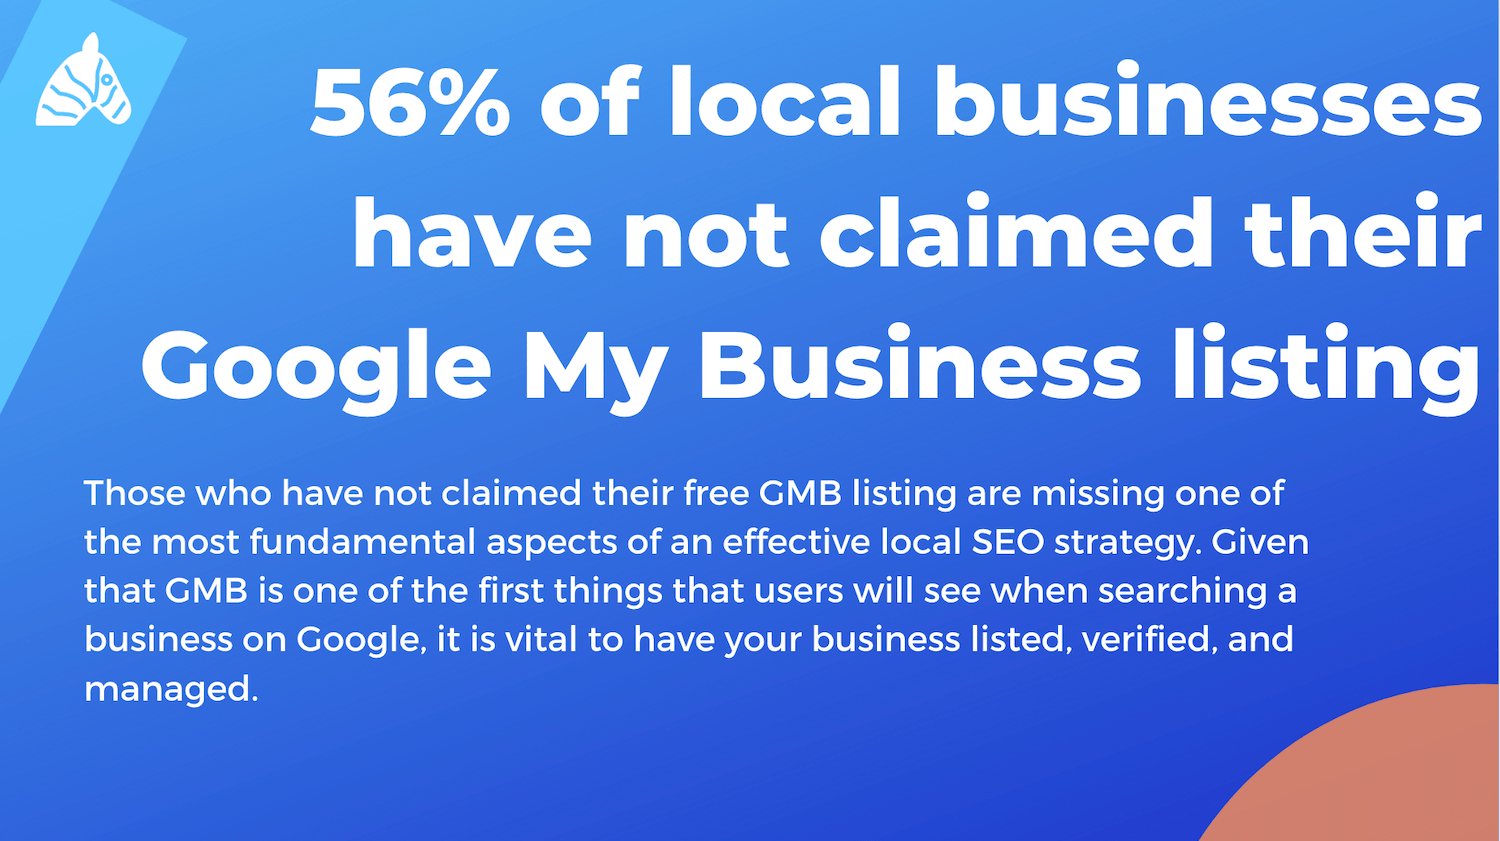 Local business and Google My Business Listings